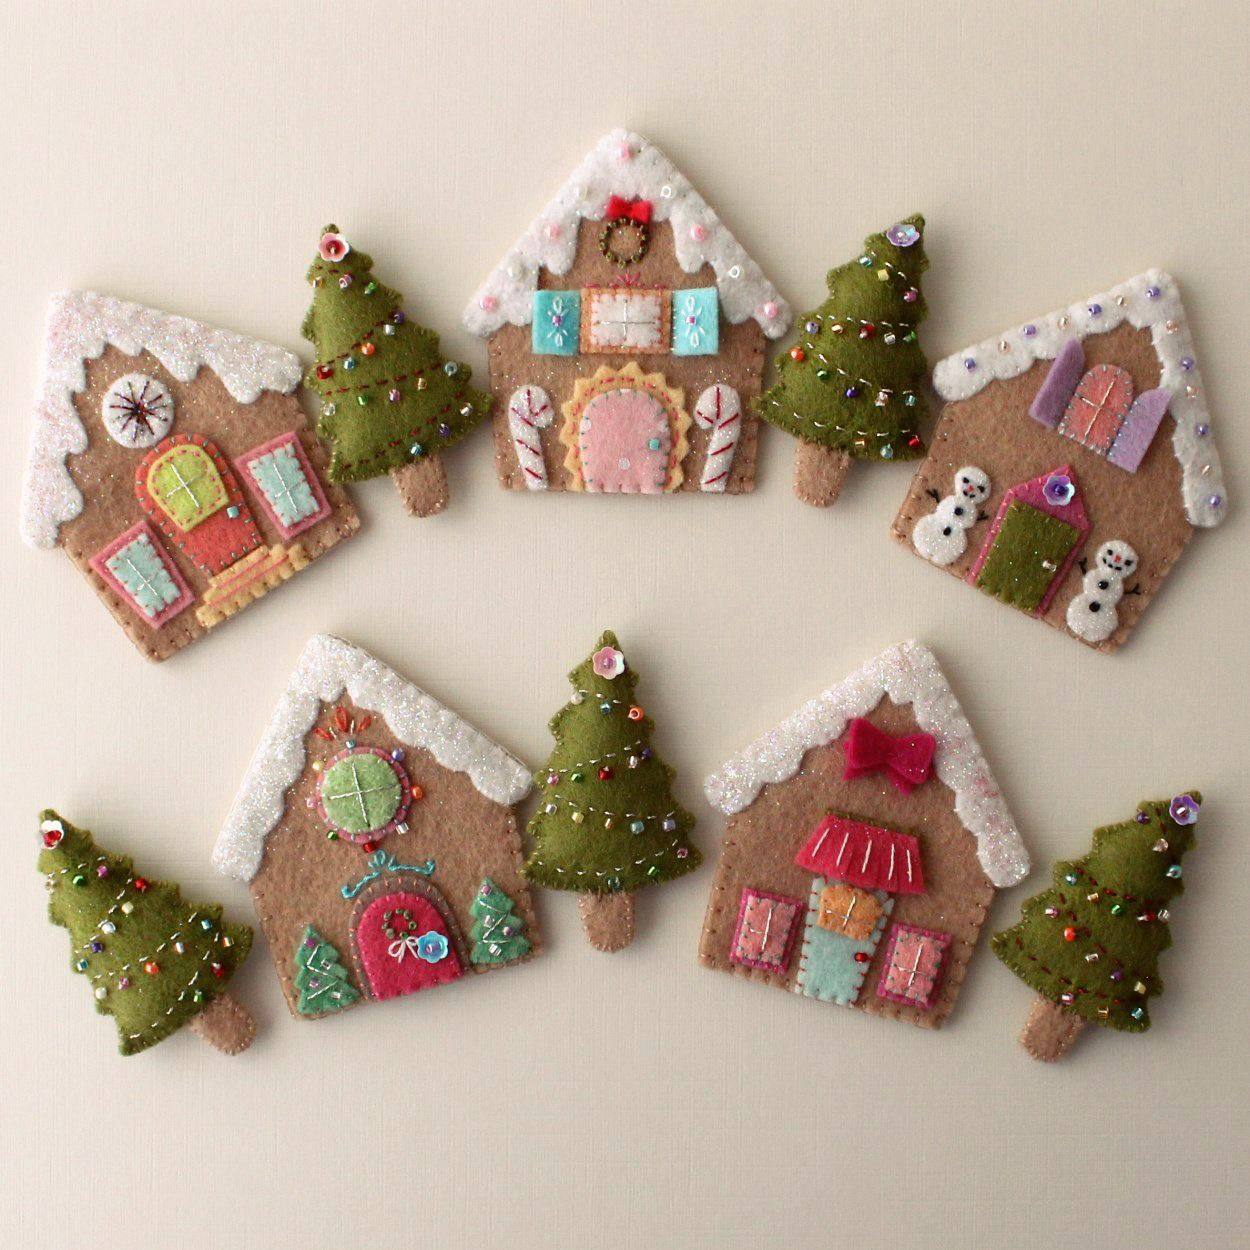 gingerbread house ornament template  Gingerbread Houses Pdf Pattern | Felt christmas decorations ...